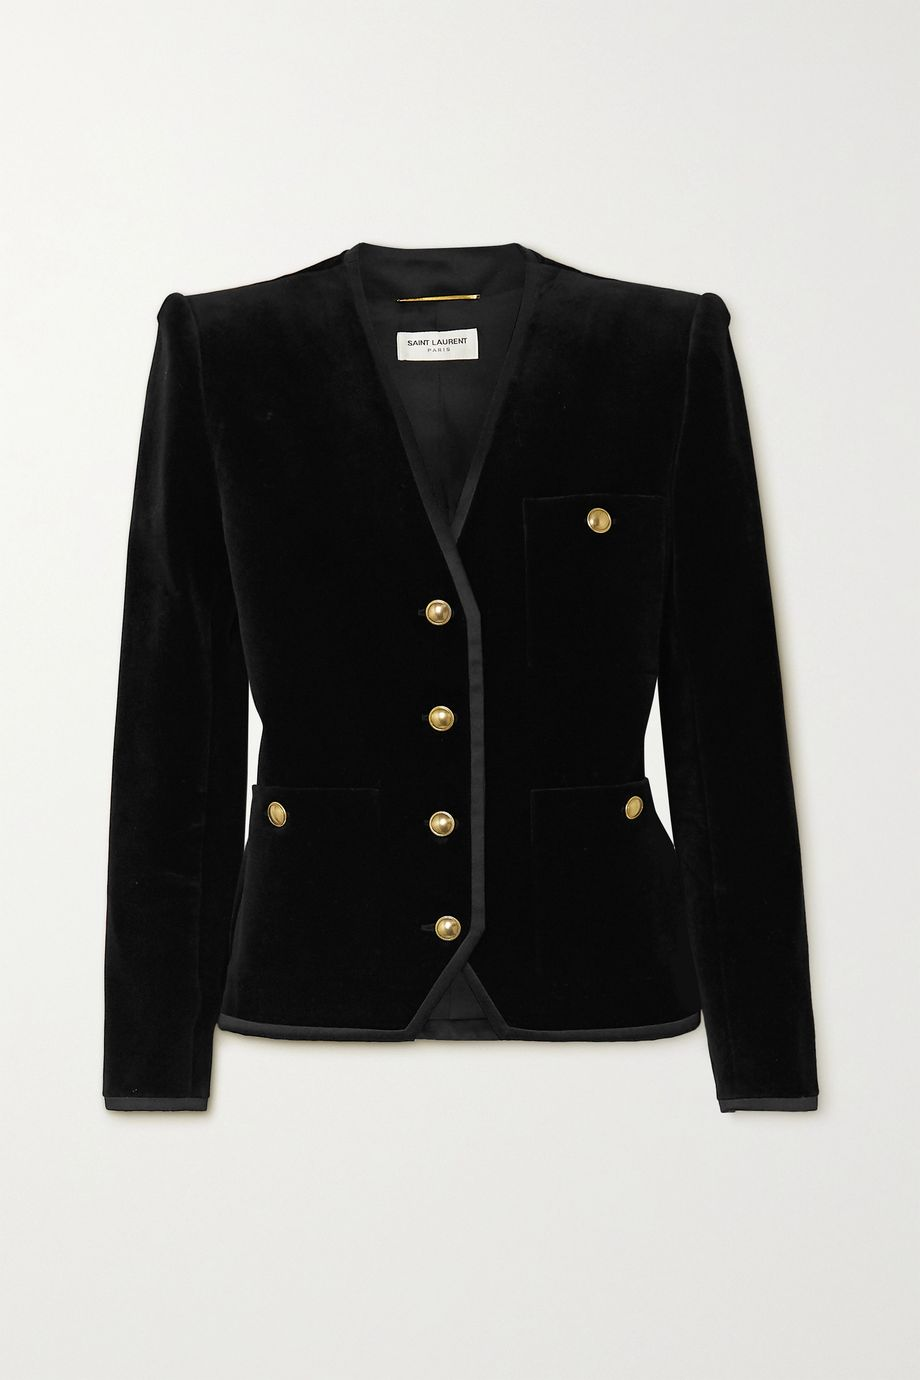 SAINT LAURENT Grosgrain-trimmed cotton-velvet blazer